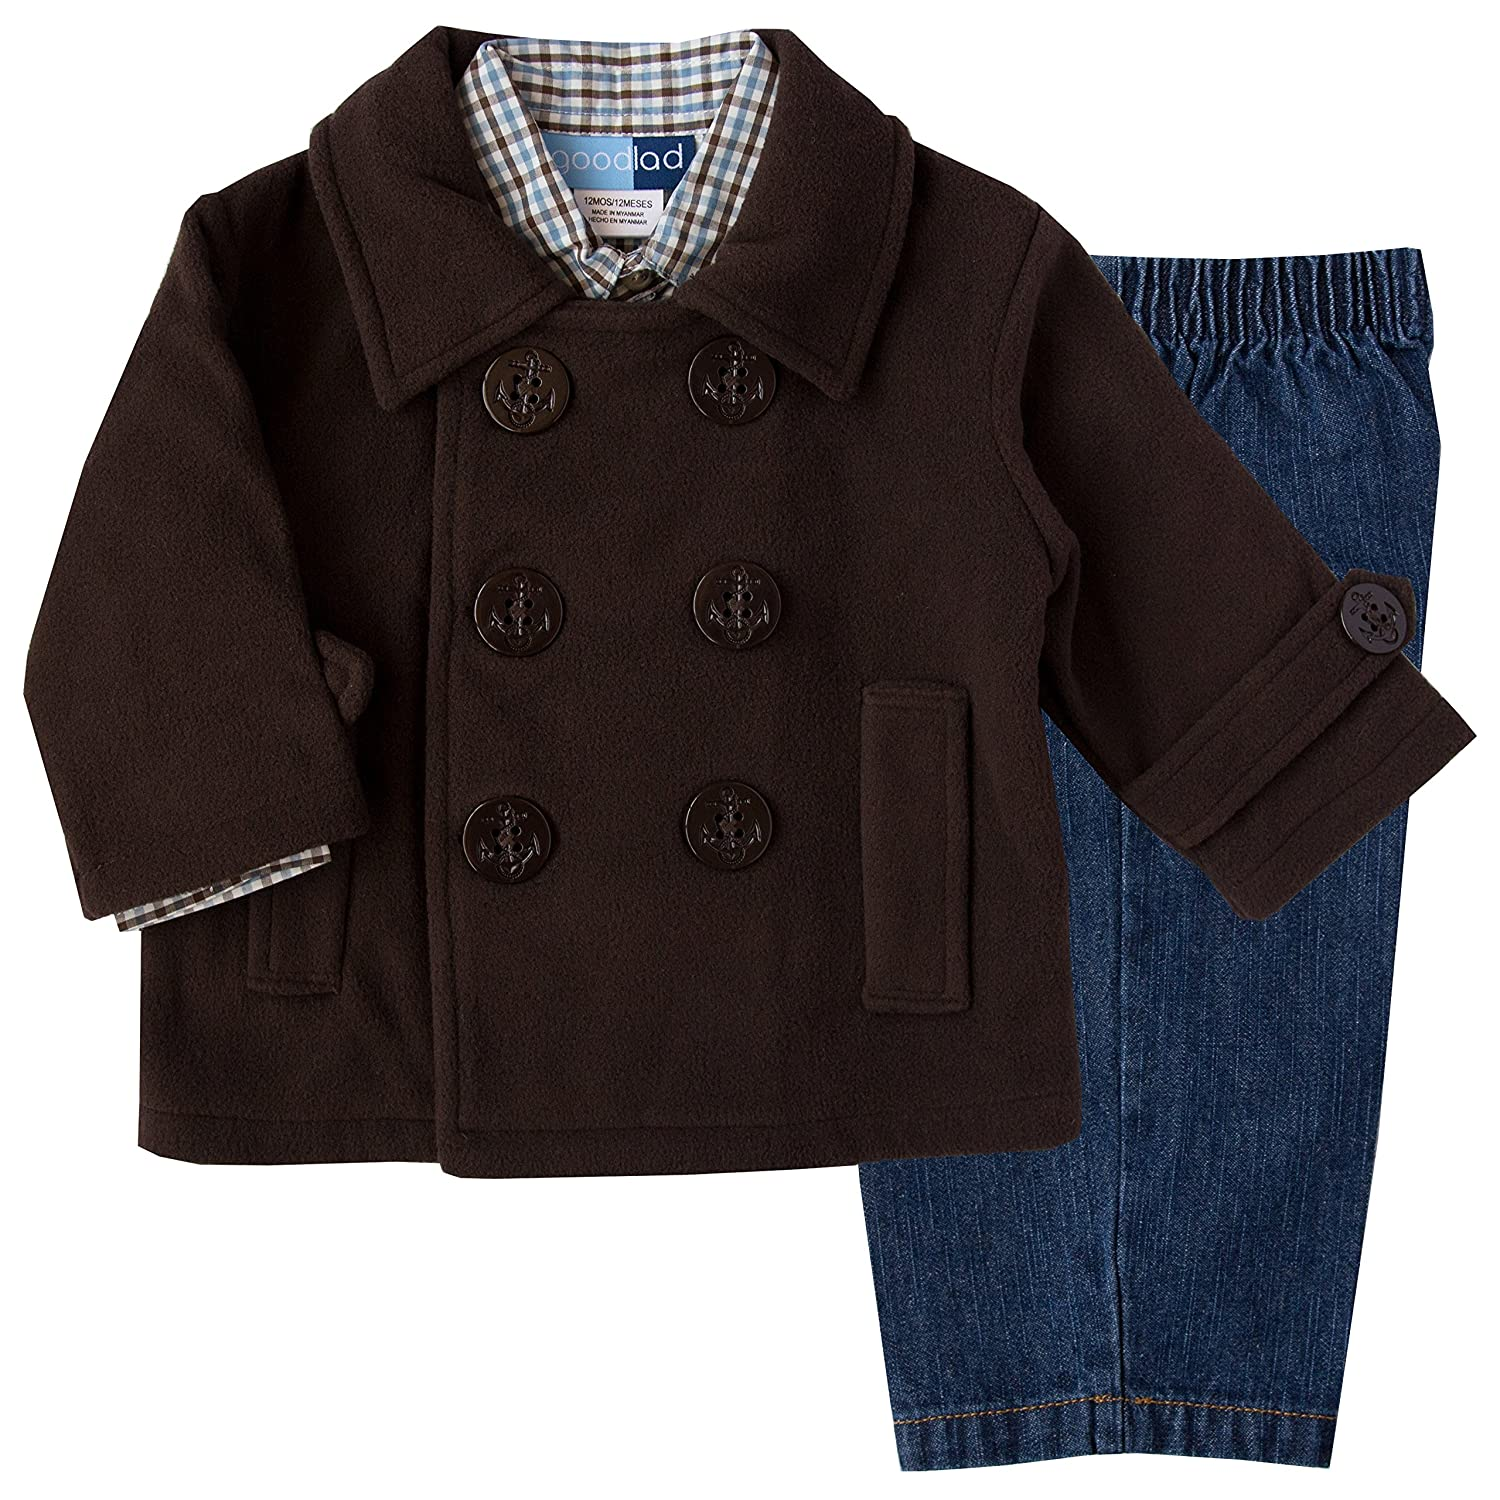 Good Lad 2/7 Boys Three Piece Fleece Peacoat Sets with Woven Pant and Shirt